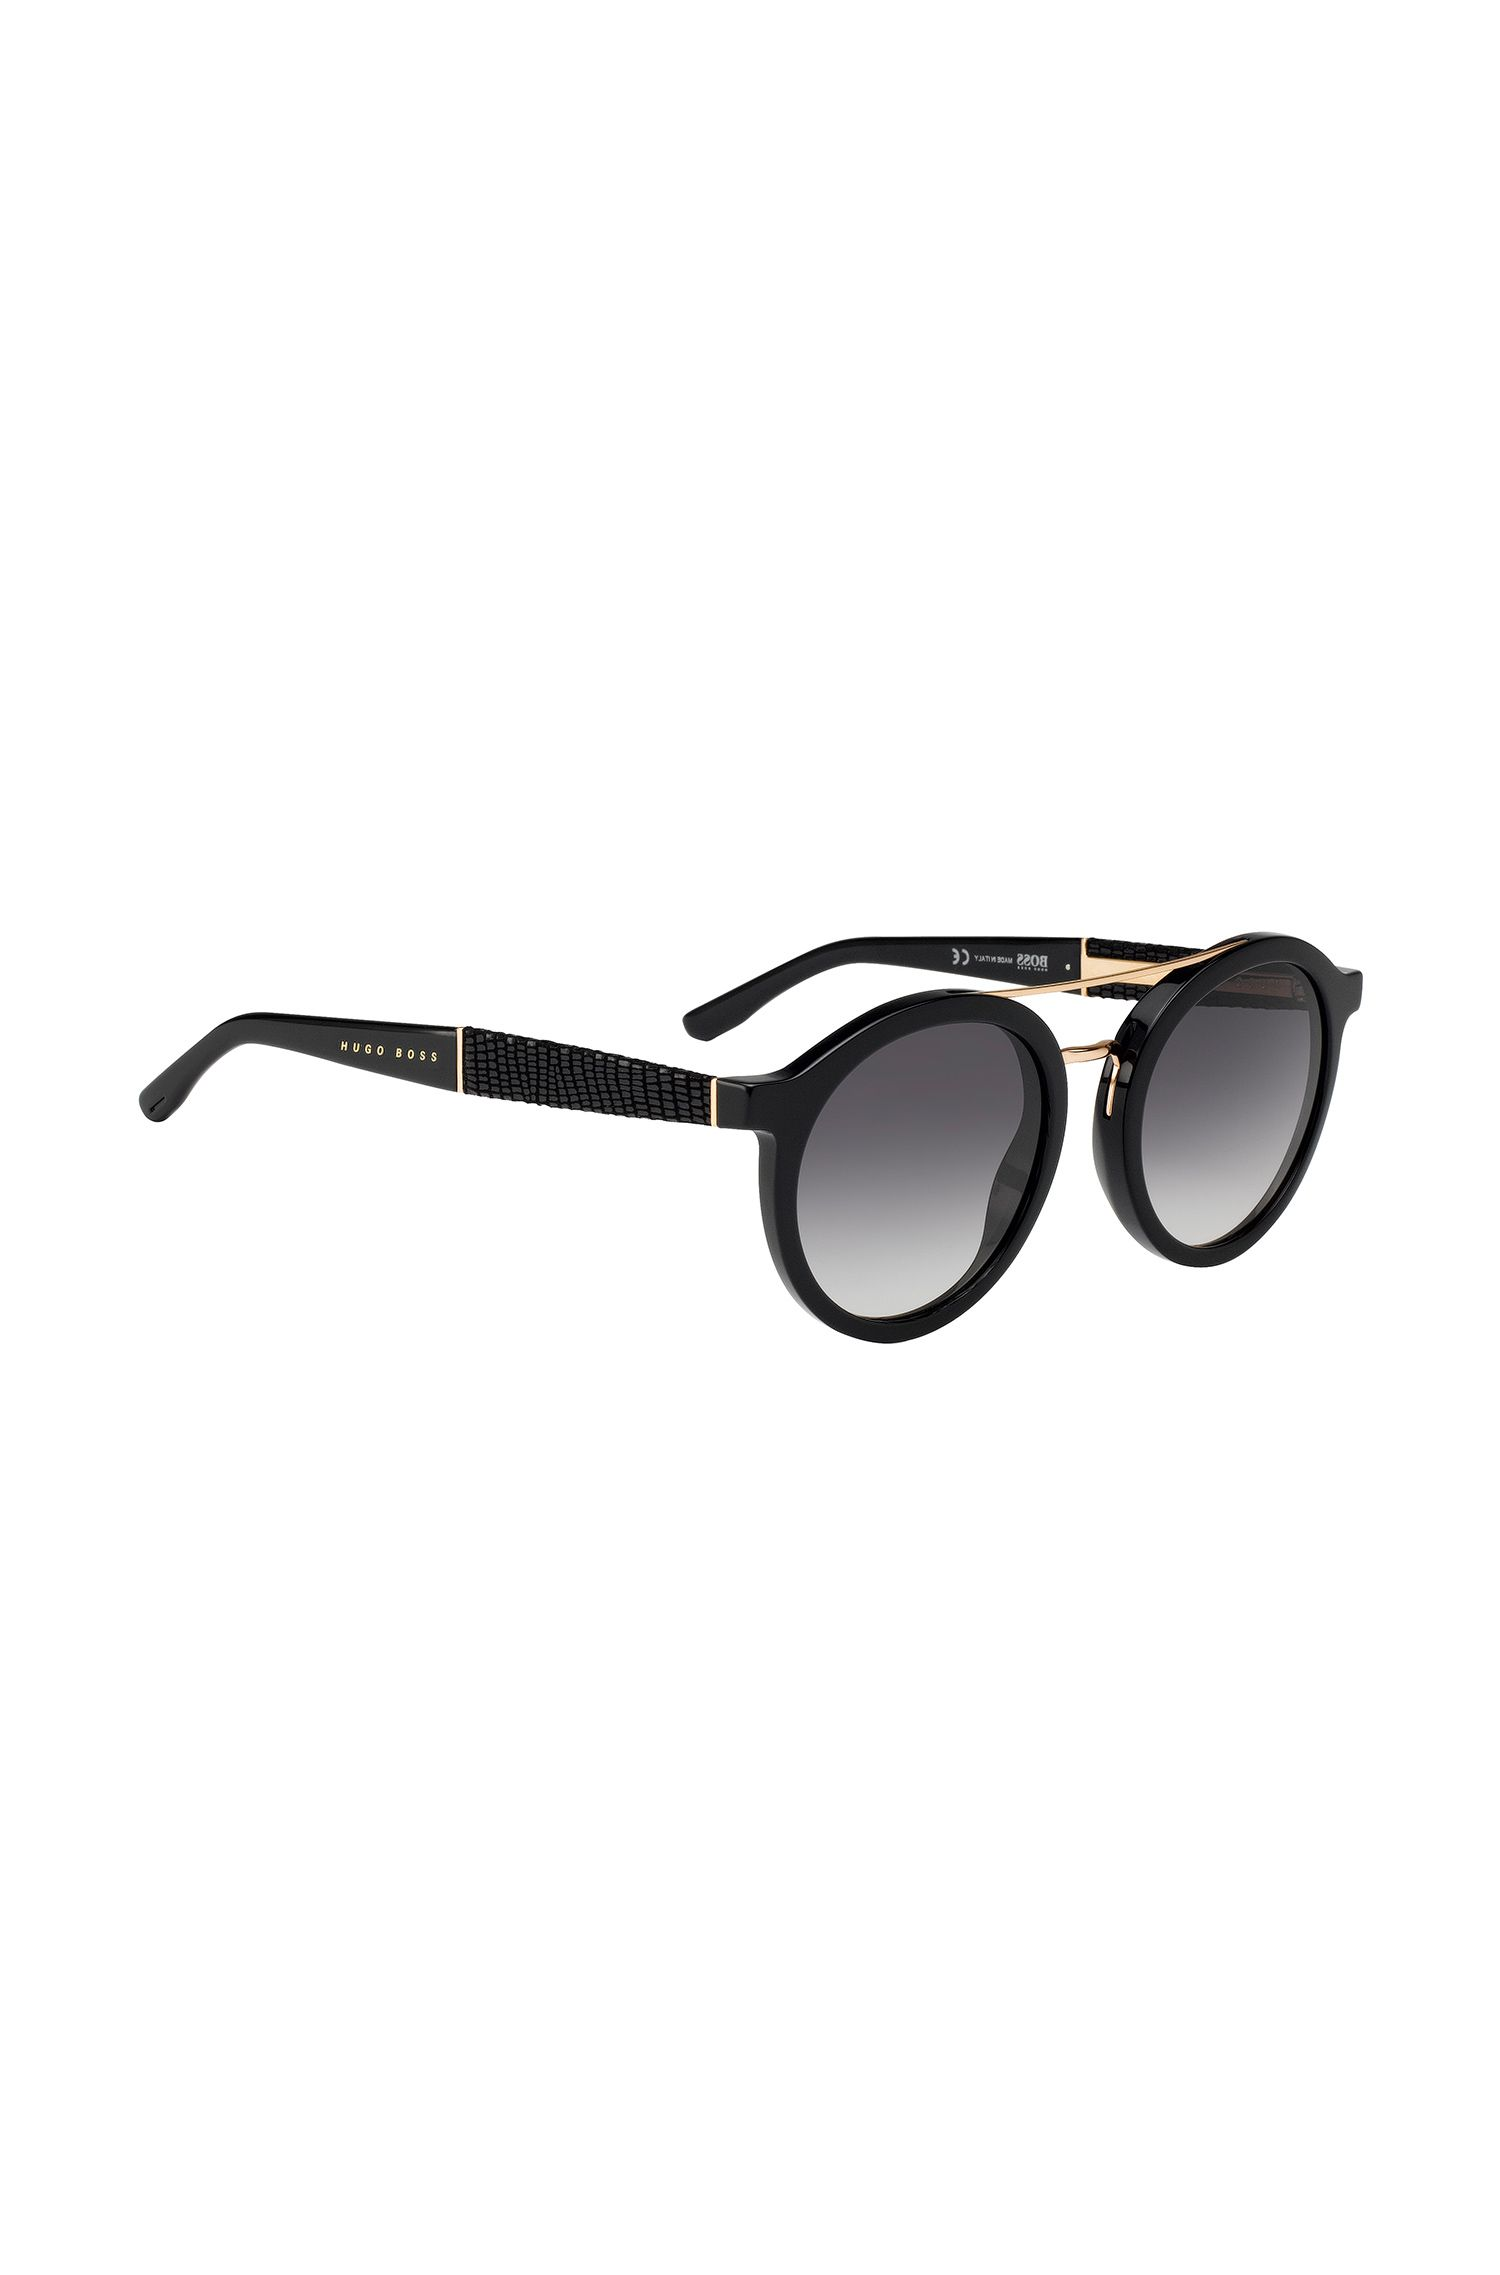 Round sunglasses with embossed leather temples